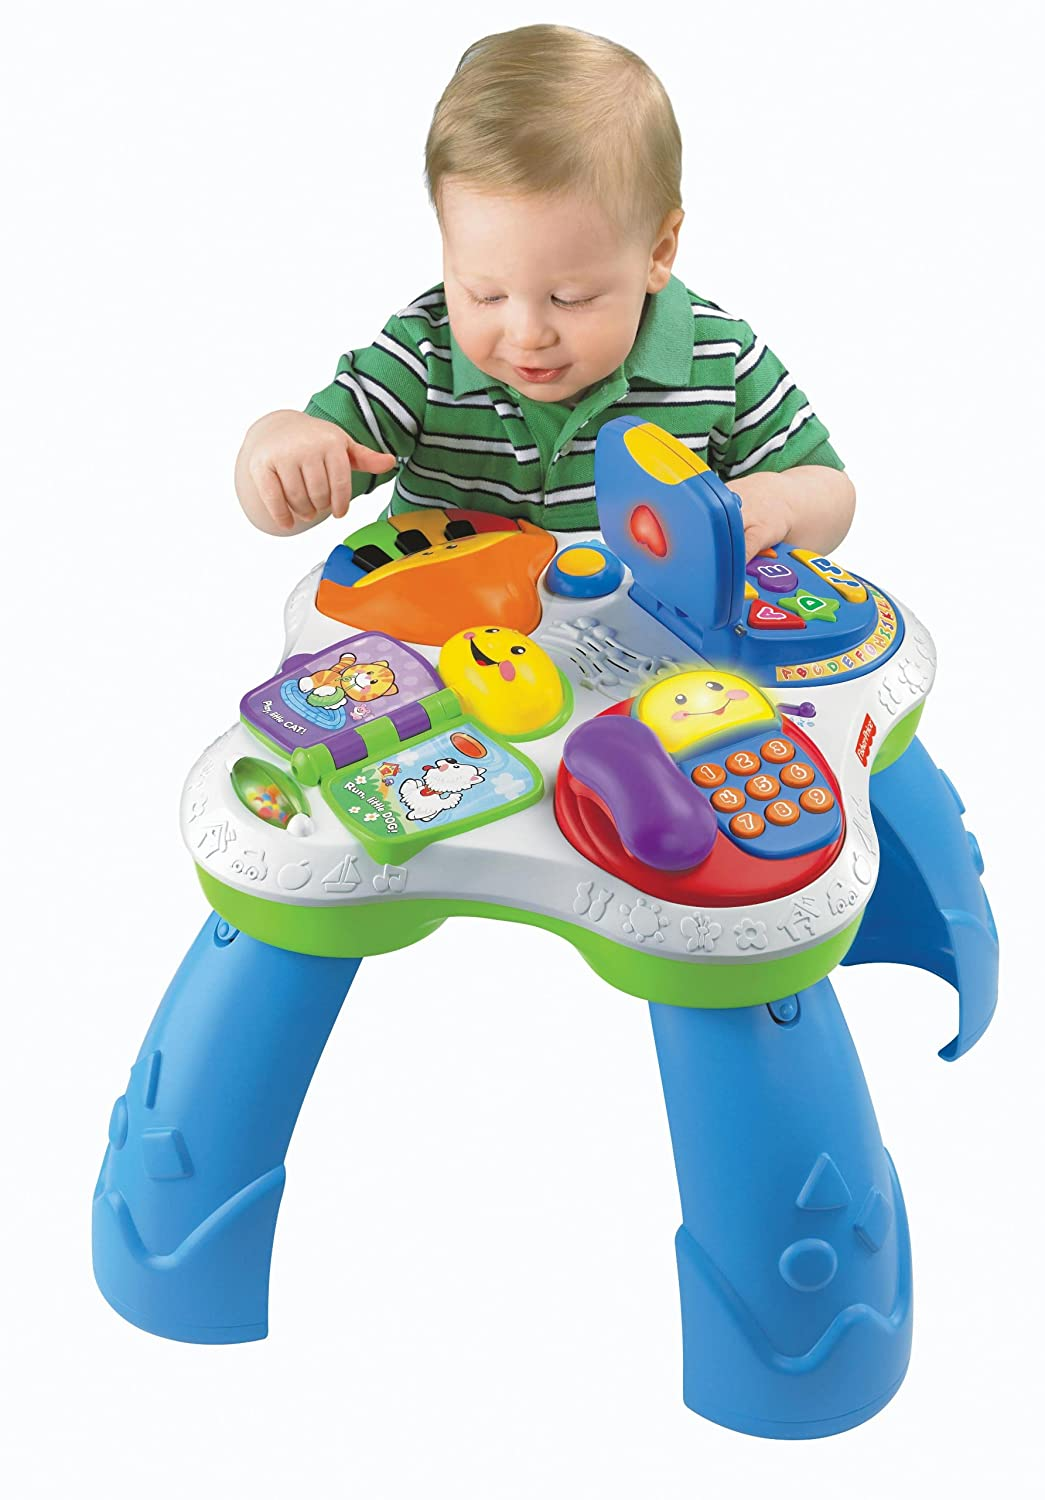 25 Best Educational Toys For Toddlers With Down Syndrome of 2021 1